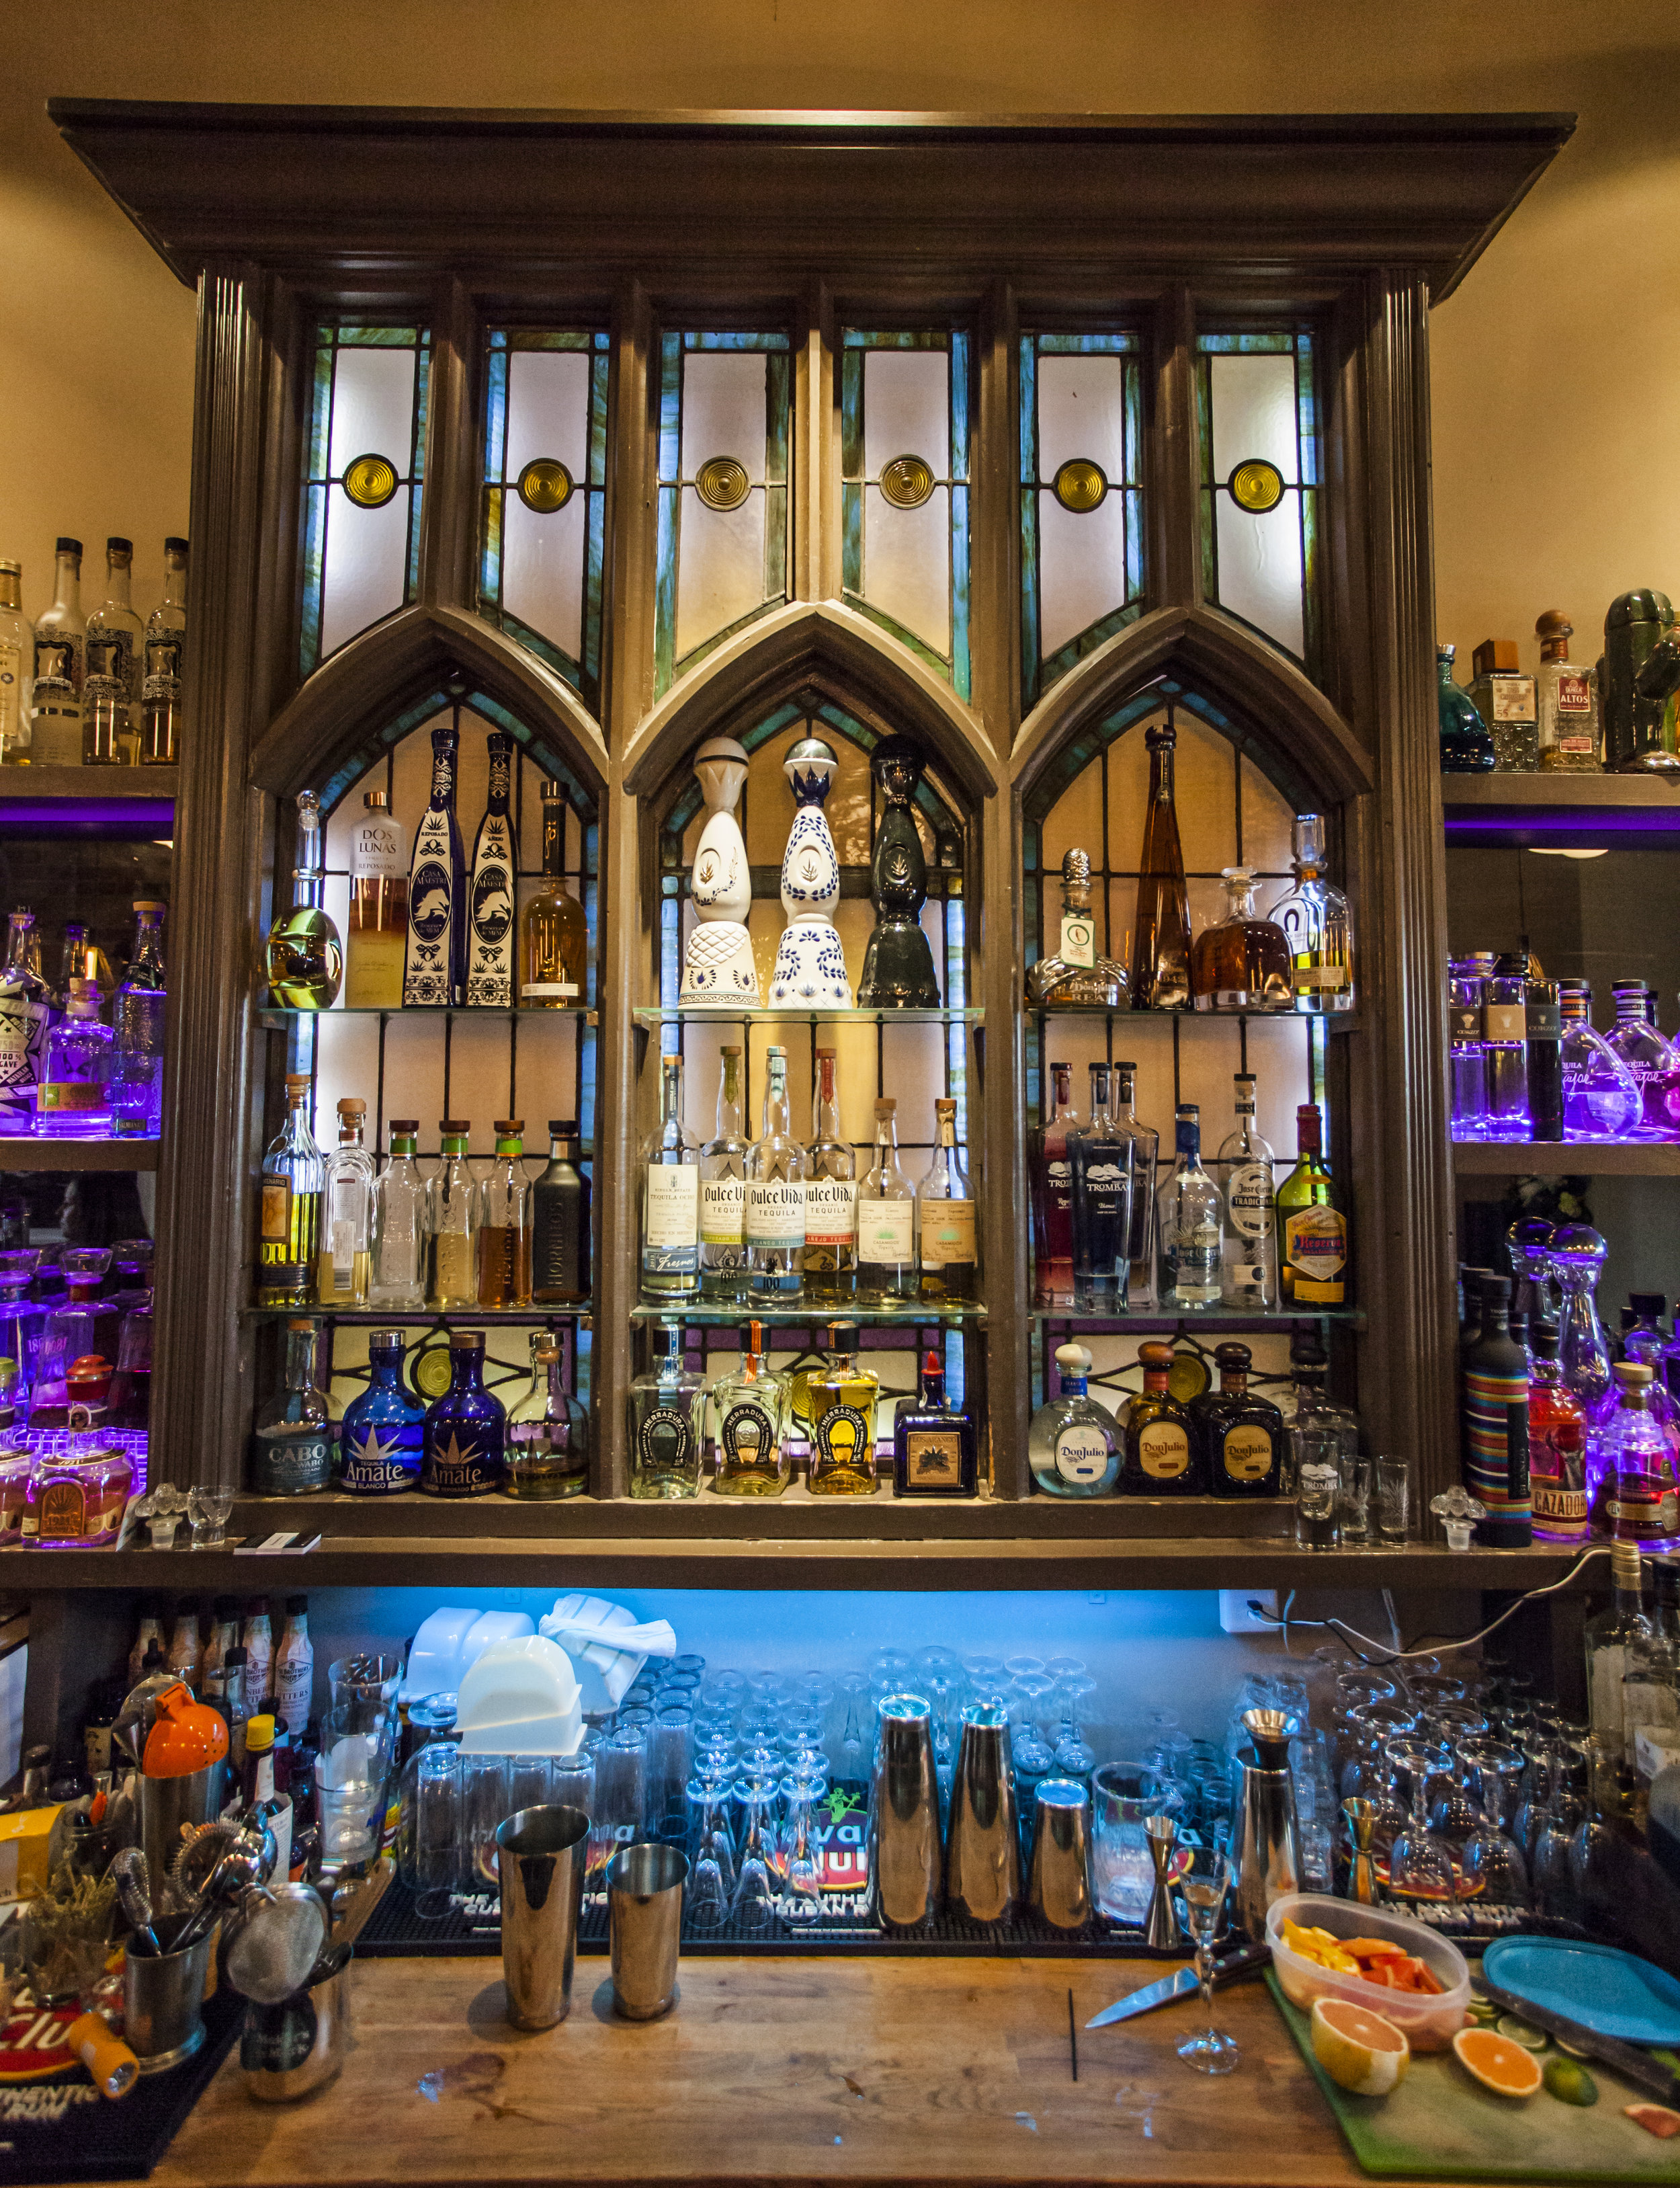 The bar at Reposado on Toronto's trendy Ossington Street offers patrons plenty of tequila options. Photo courtesy of Joe Fuda.